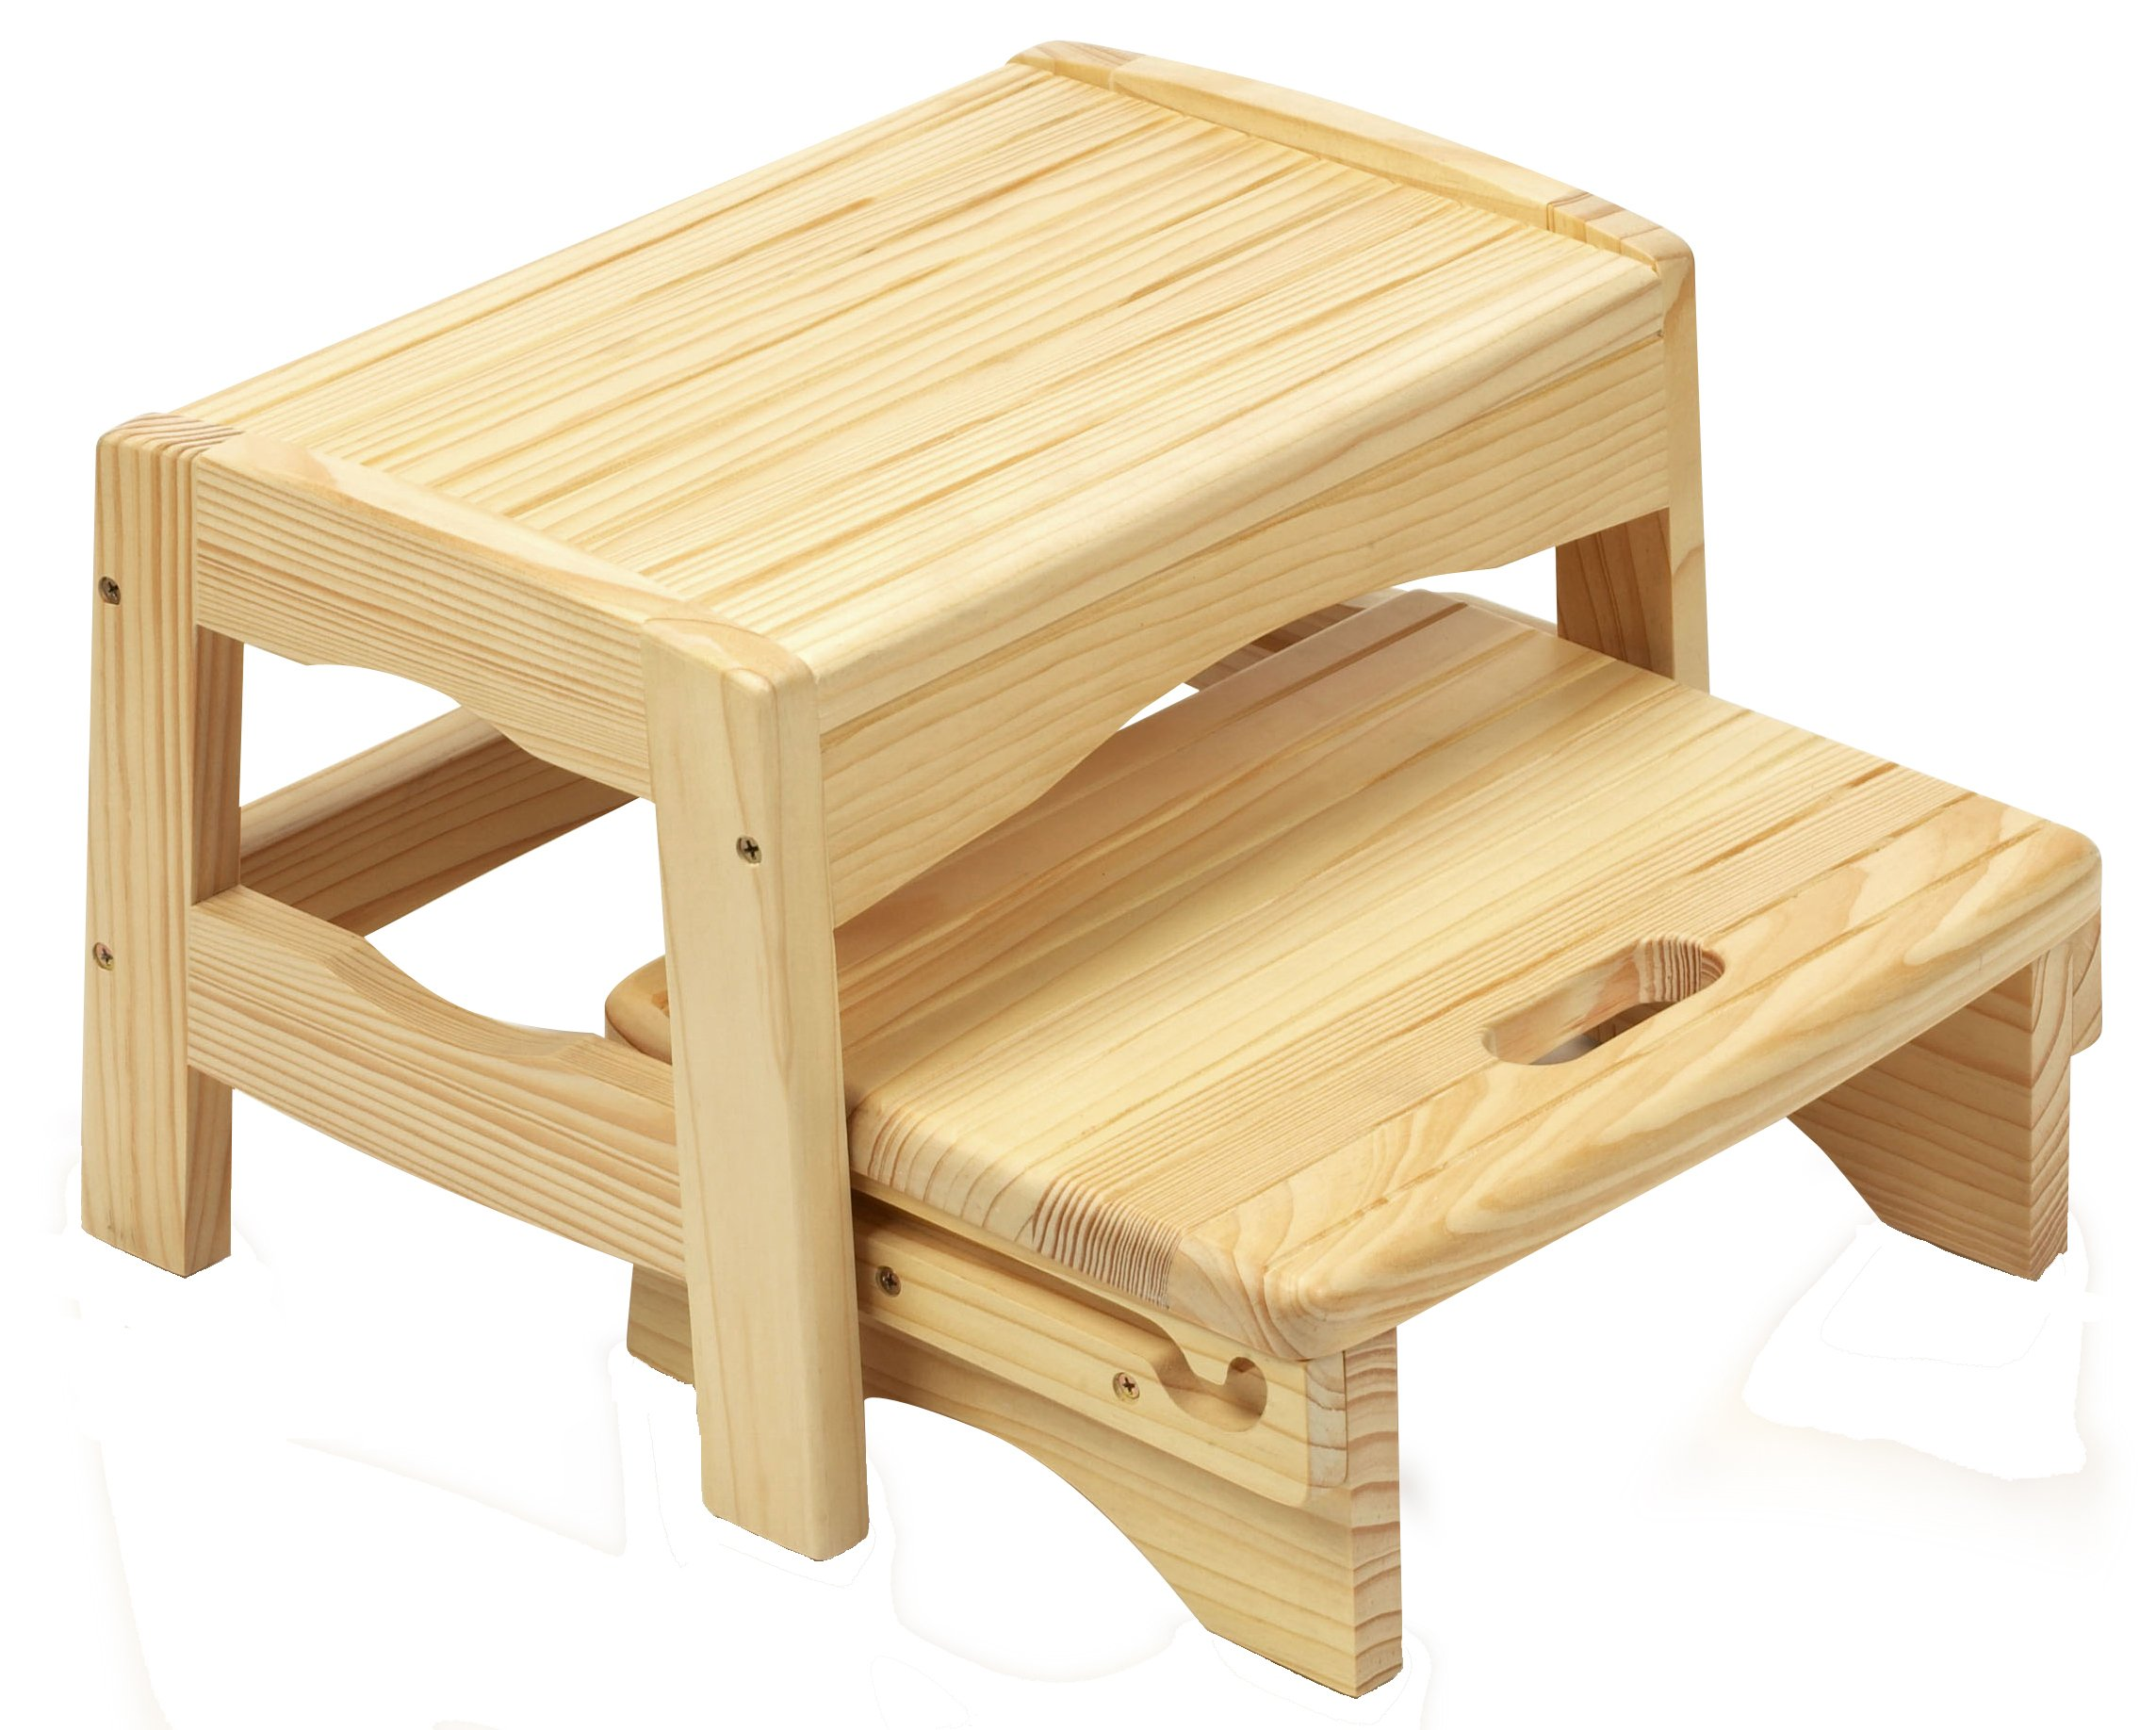 Safety 1st Solid Wooden 2 Step Stool with 2 Steps and Slip-Resistant Pads for Children and Toddlers, 18 m+  Solid wood stool suitable from 18 months to around 4 years or up to 22 kgs Lightweight design for easy portability Two levels help the child reach the sink 1